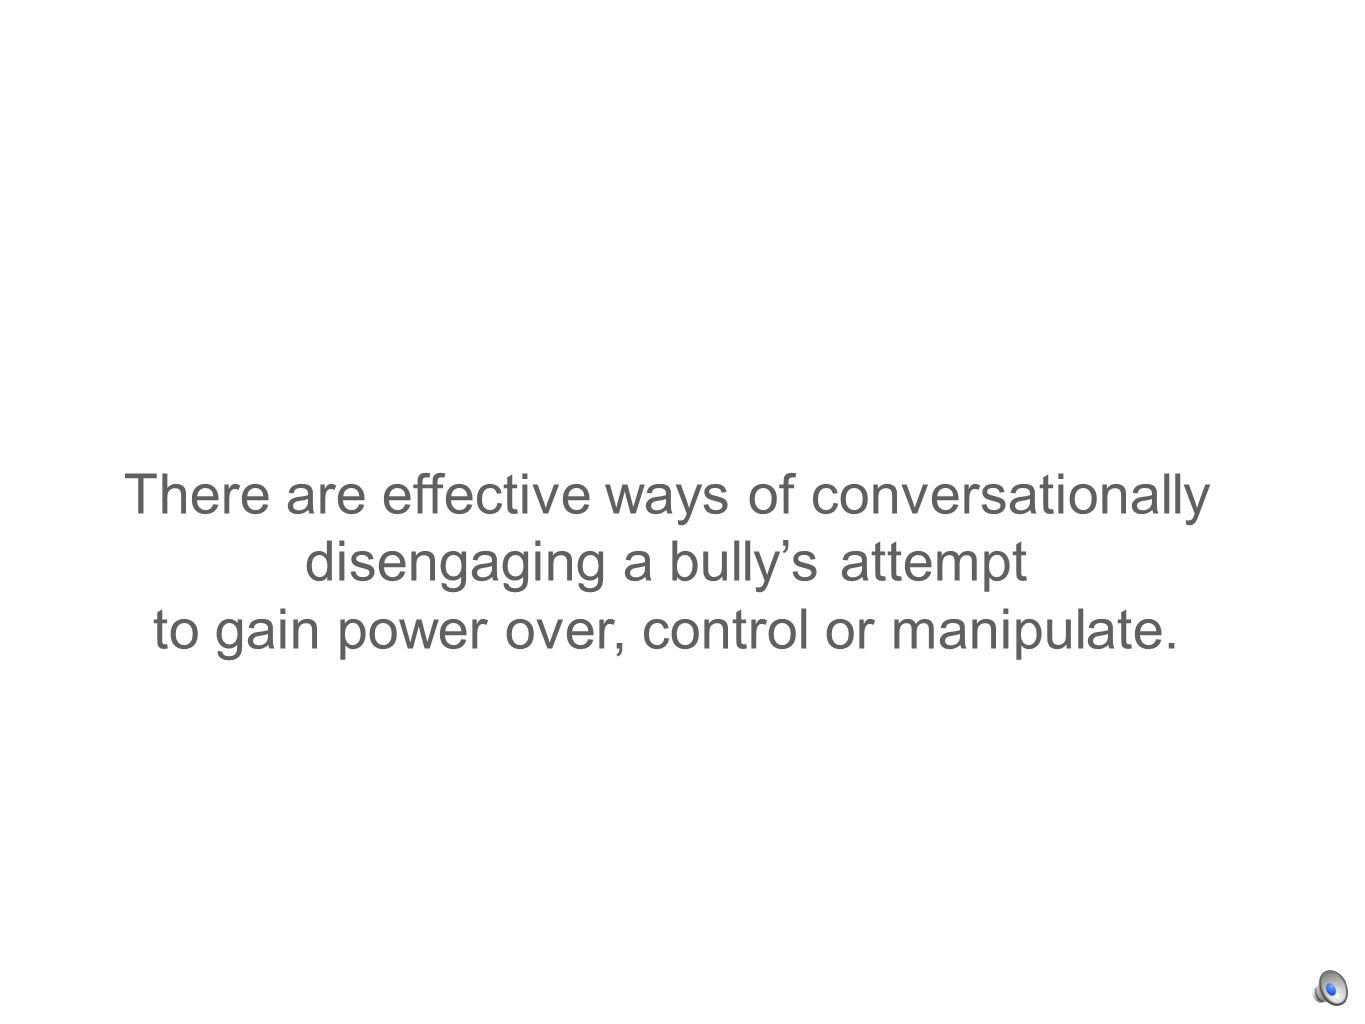 There are effective ways of conversationally disengaging a bullys attempt to gain power over, control or manipulate.